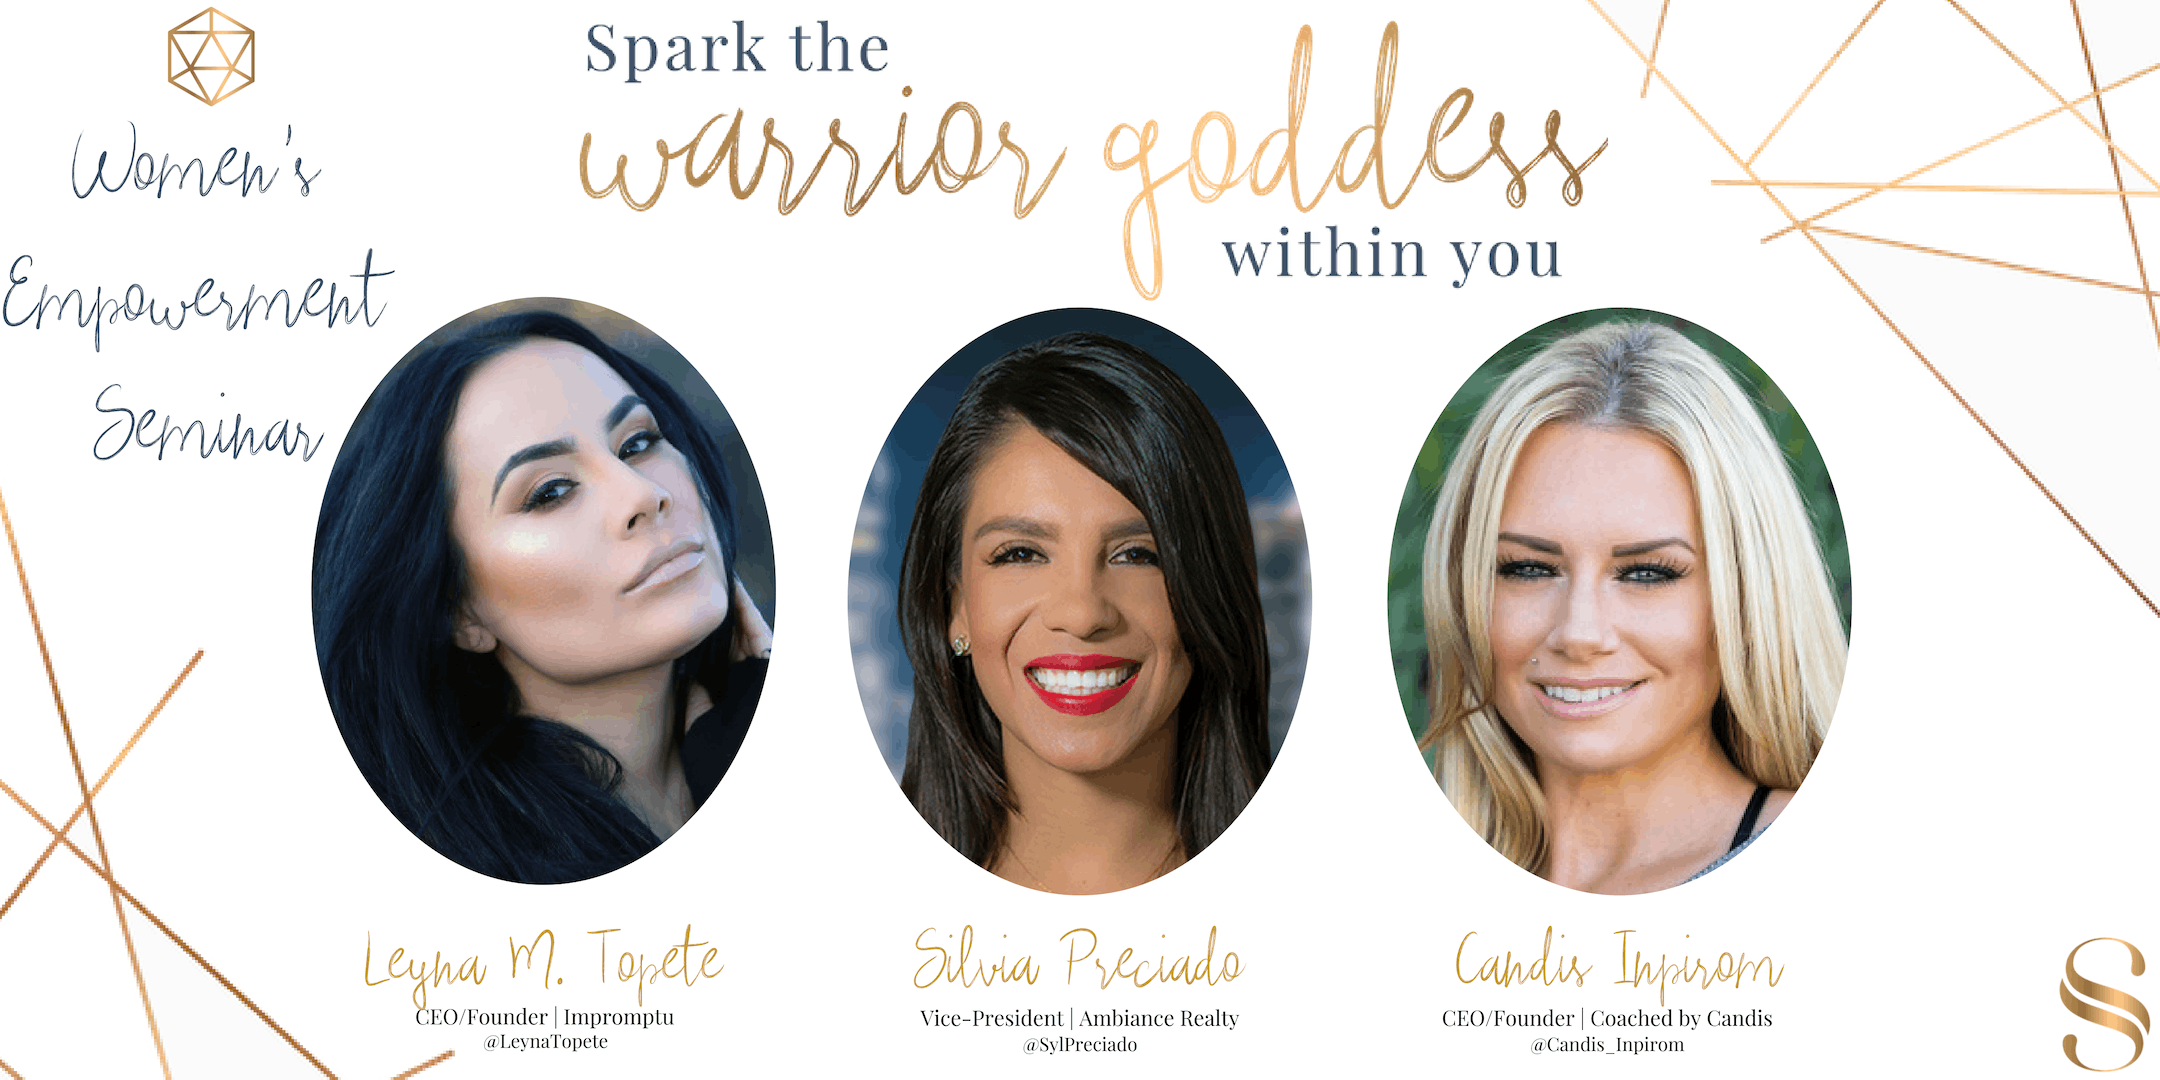 Spark the Warrior Goddess within you!